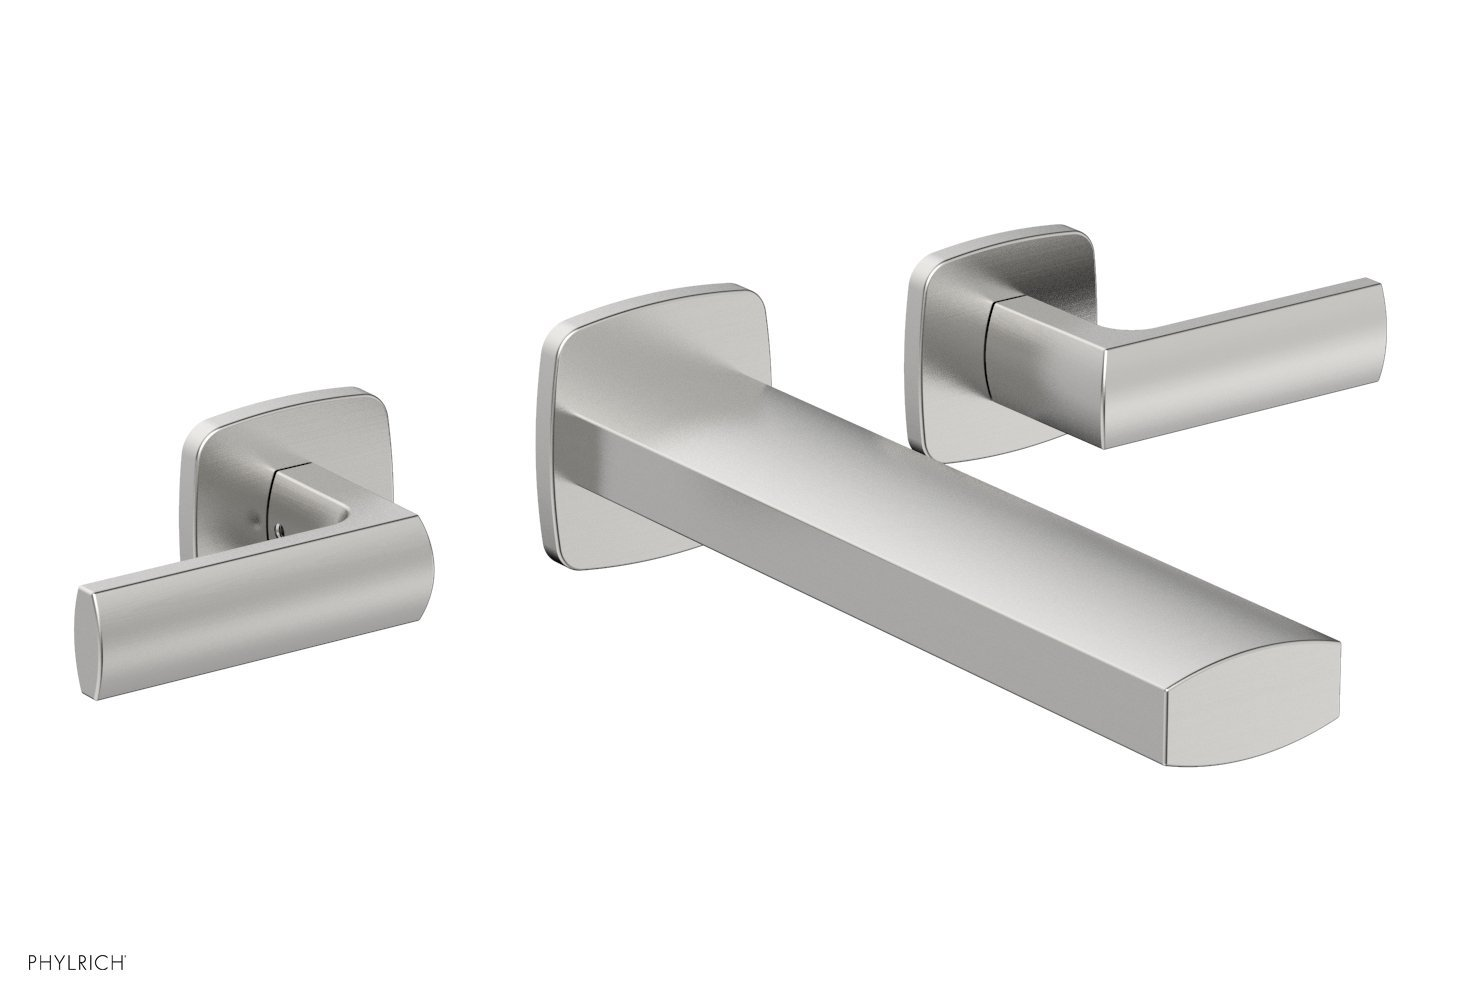 Phylrich 181-57-26D RADI Wall Tub Set - Lever Handles - Satin Chrome